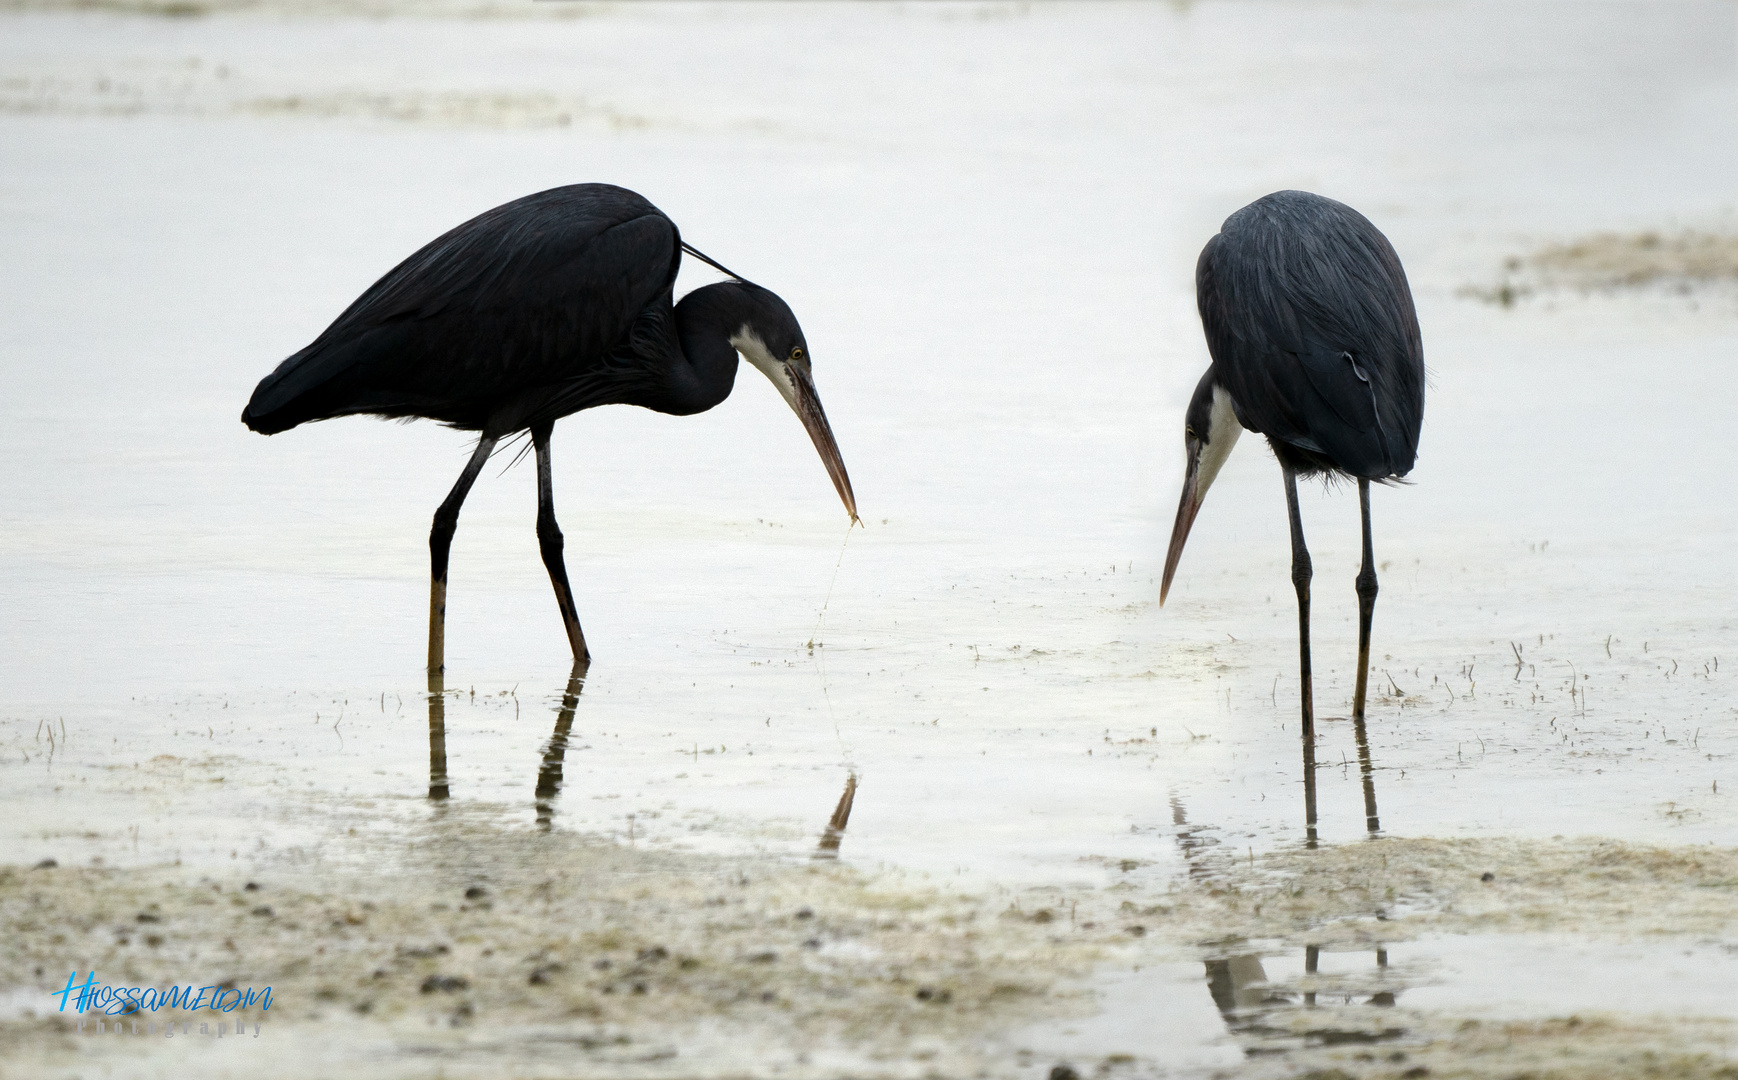 I can see your beak !!